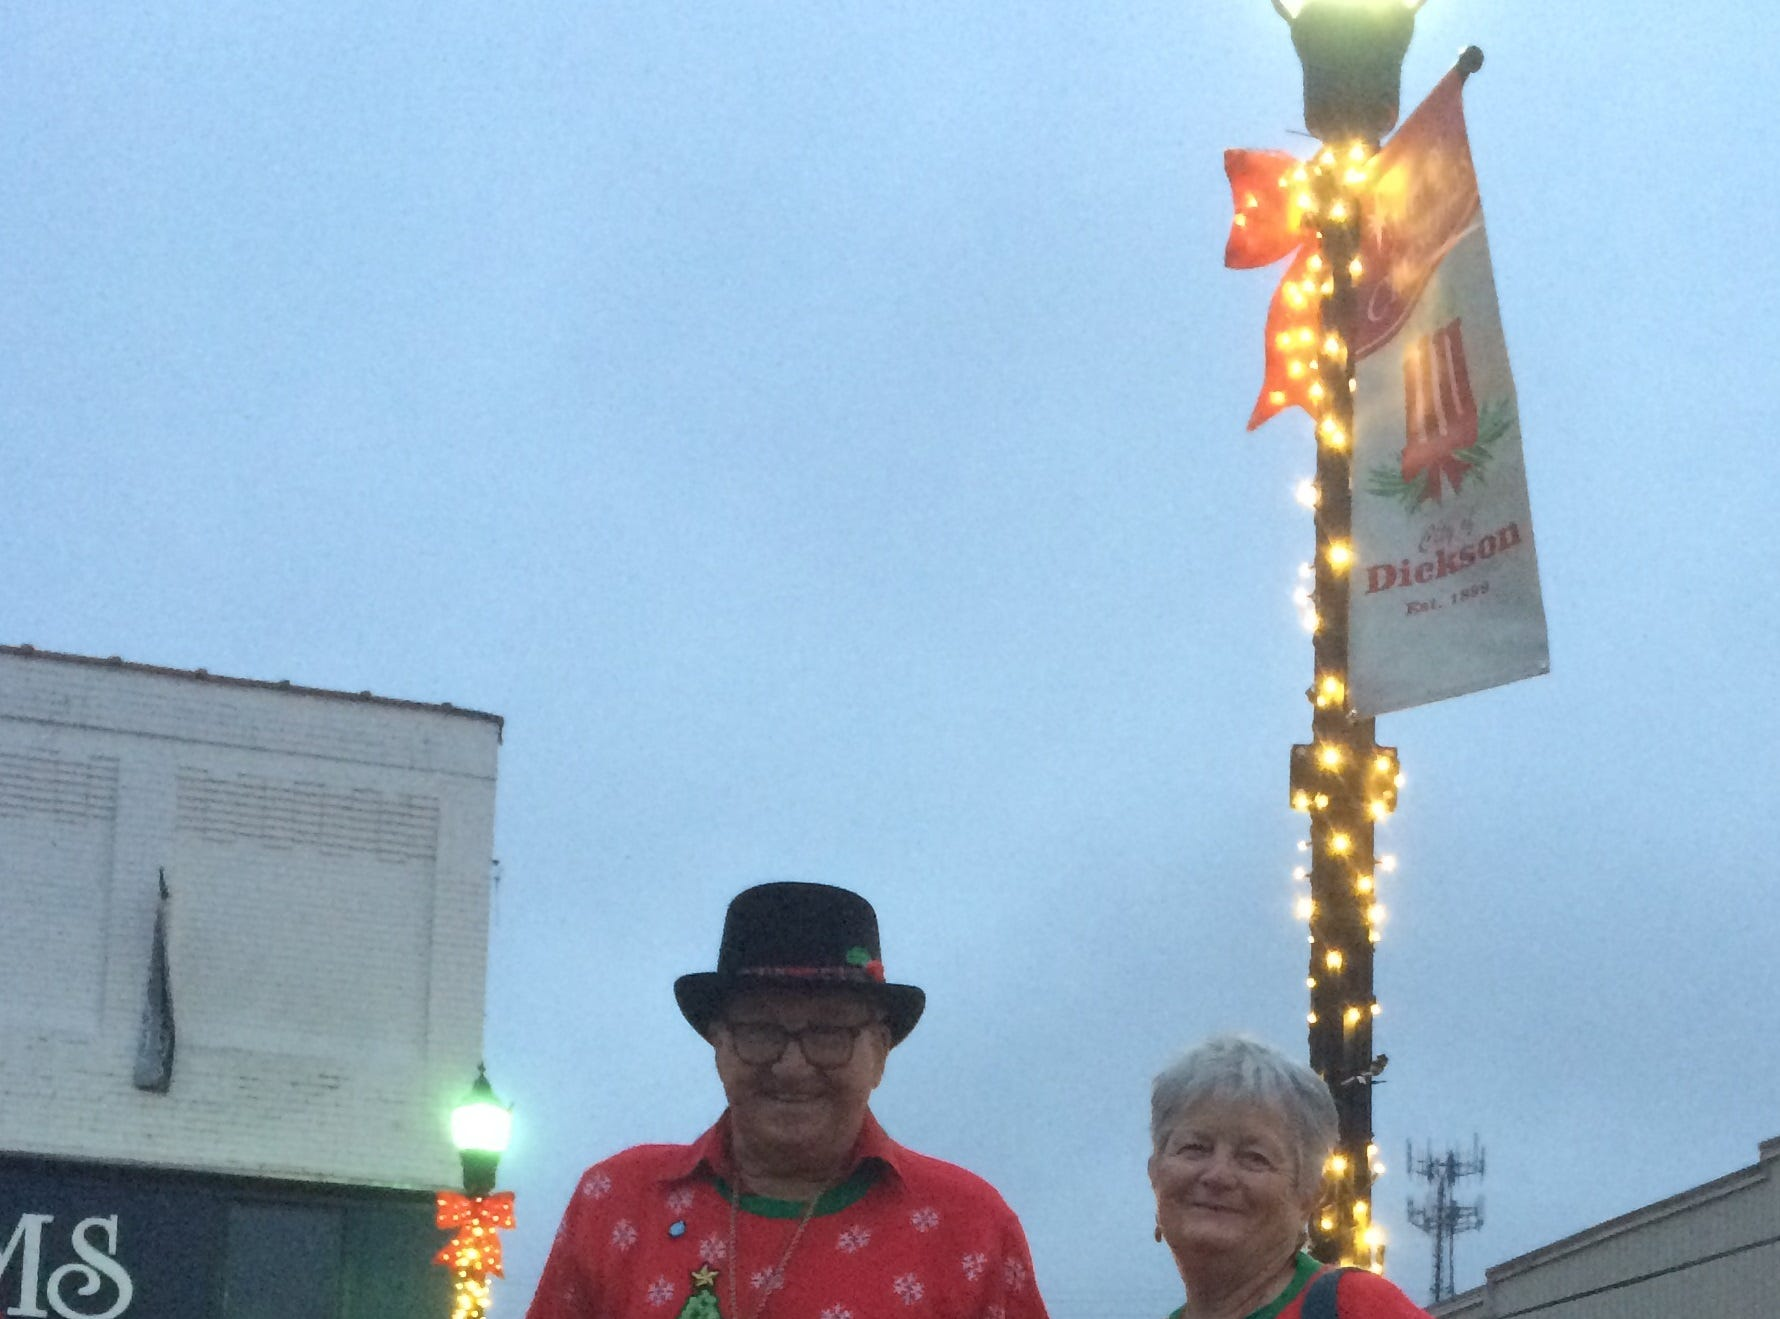 Christmas in Downtown Dickson. Pictured are Ray and Lynn Taylor.